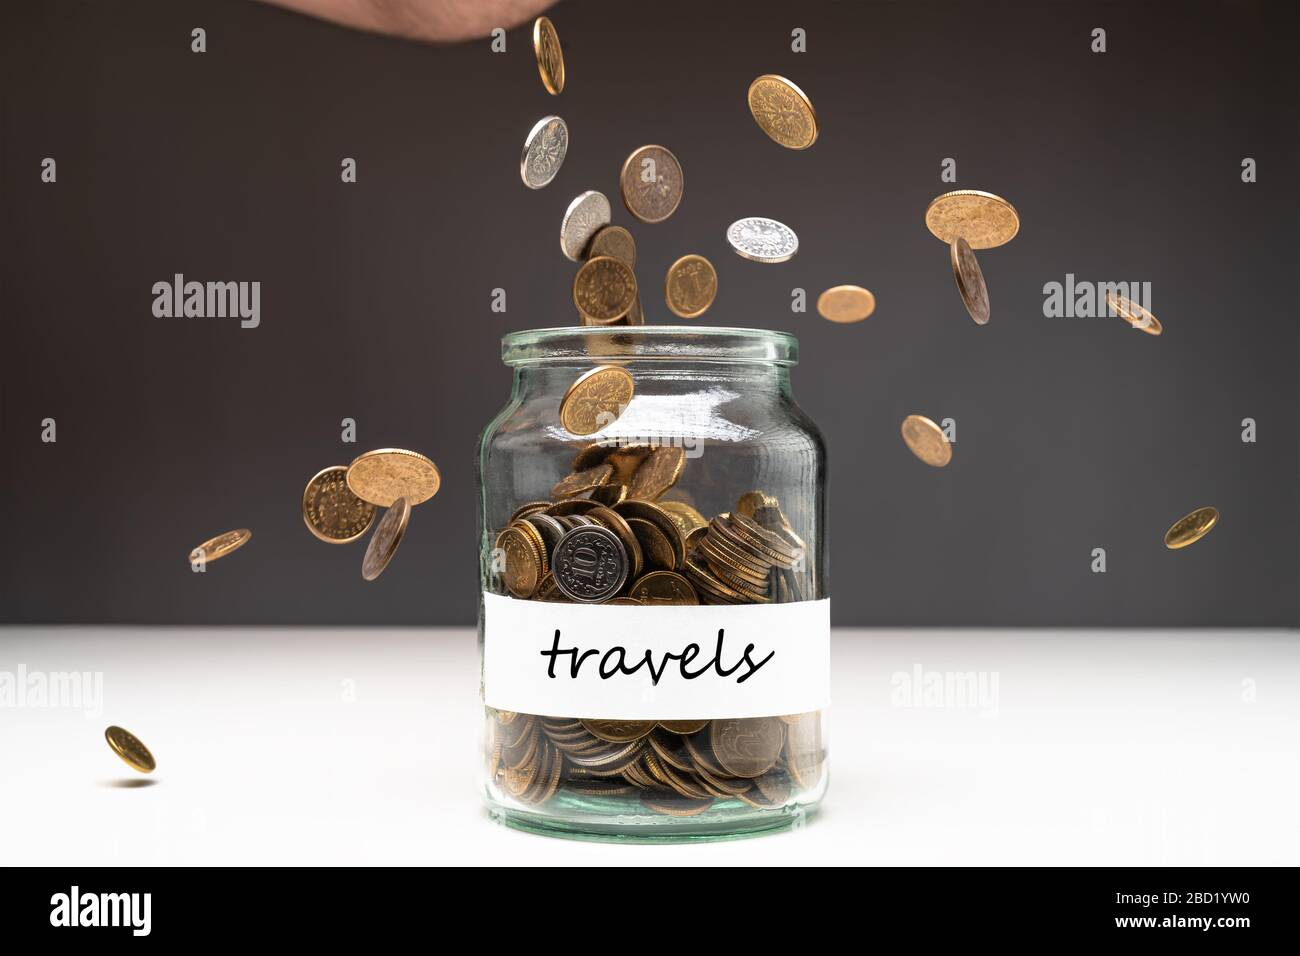 Coins in a jar with travels text on a white label. Money falling from the sky above. Savings abstract concept. Copy space. Stock Photo